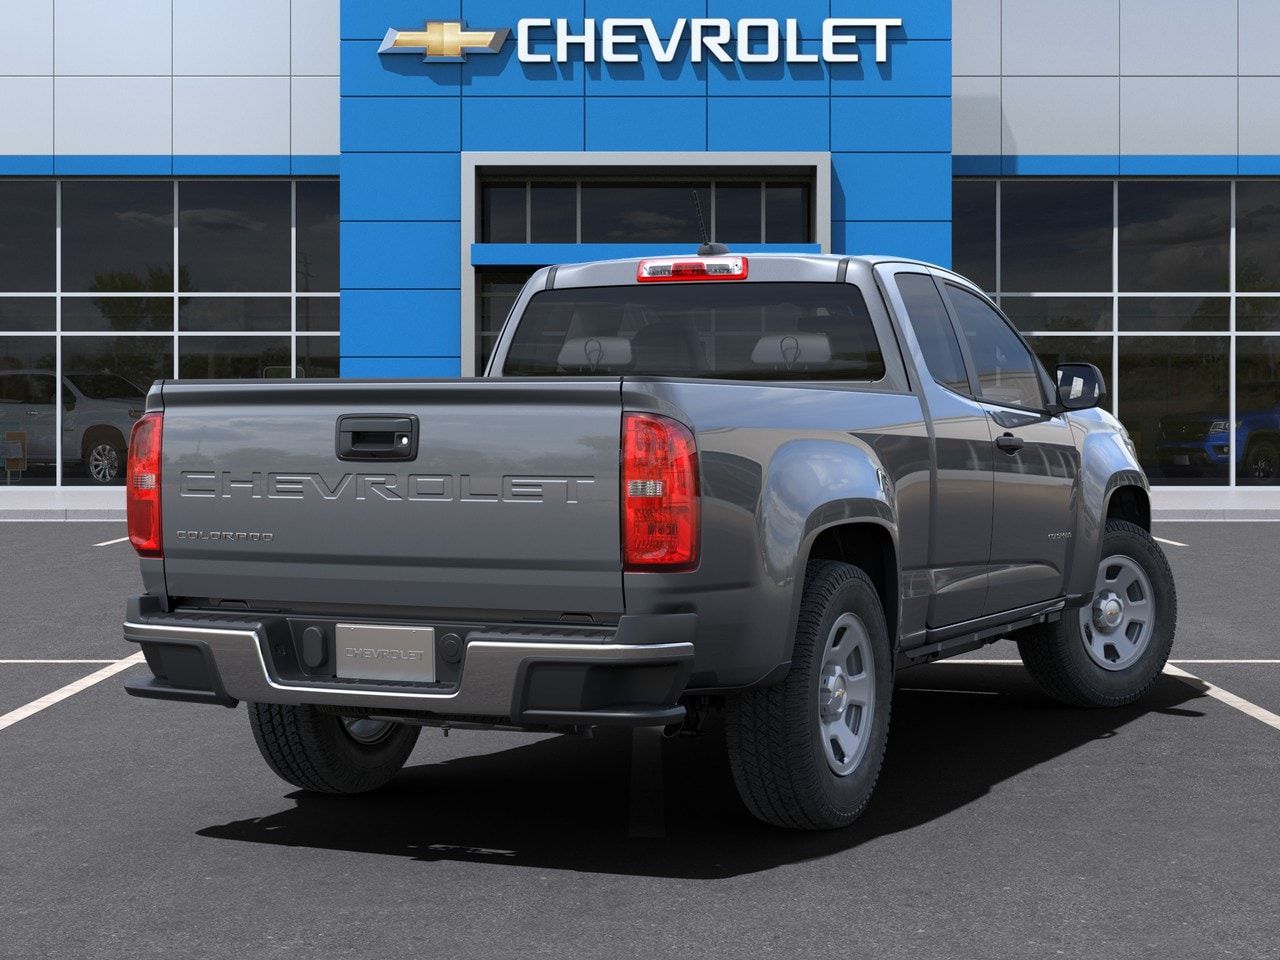 2021 Chevrolet Colorado Extended Cab 4x2, Pickup #M1193360 - photo 3